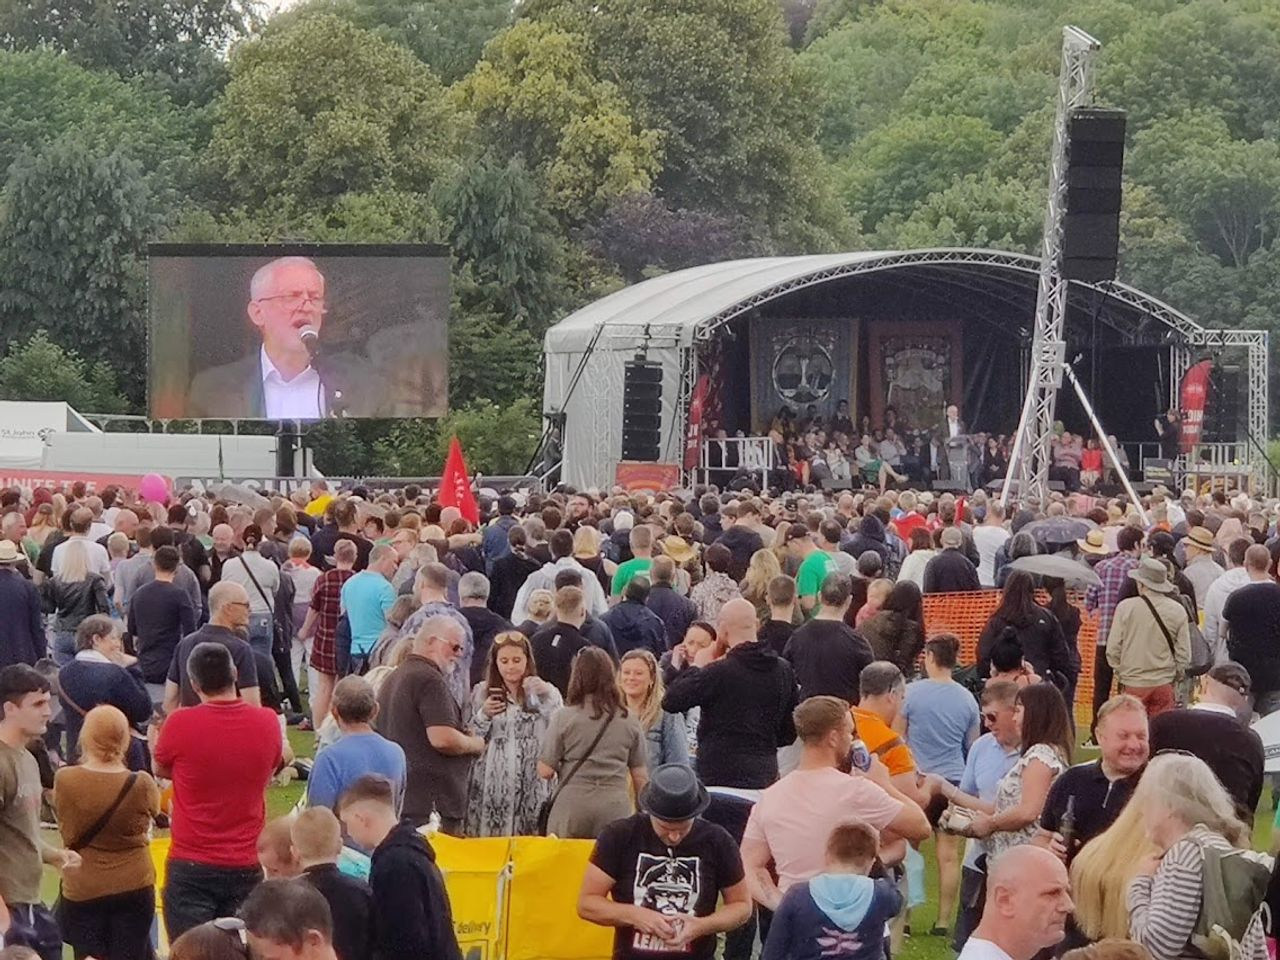 Jeremy Corbyn speaking at the rally